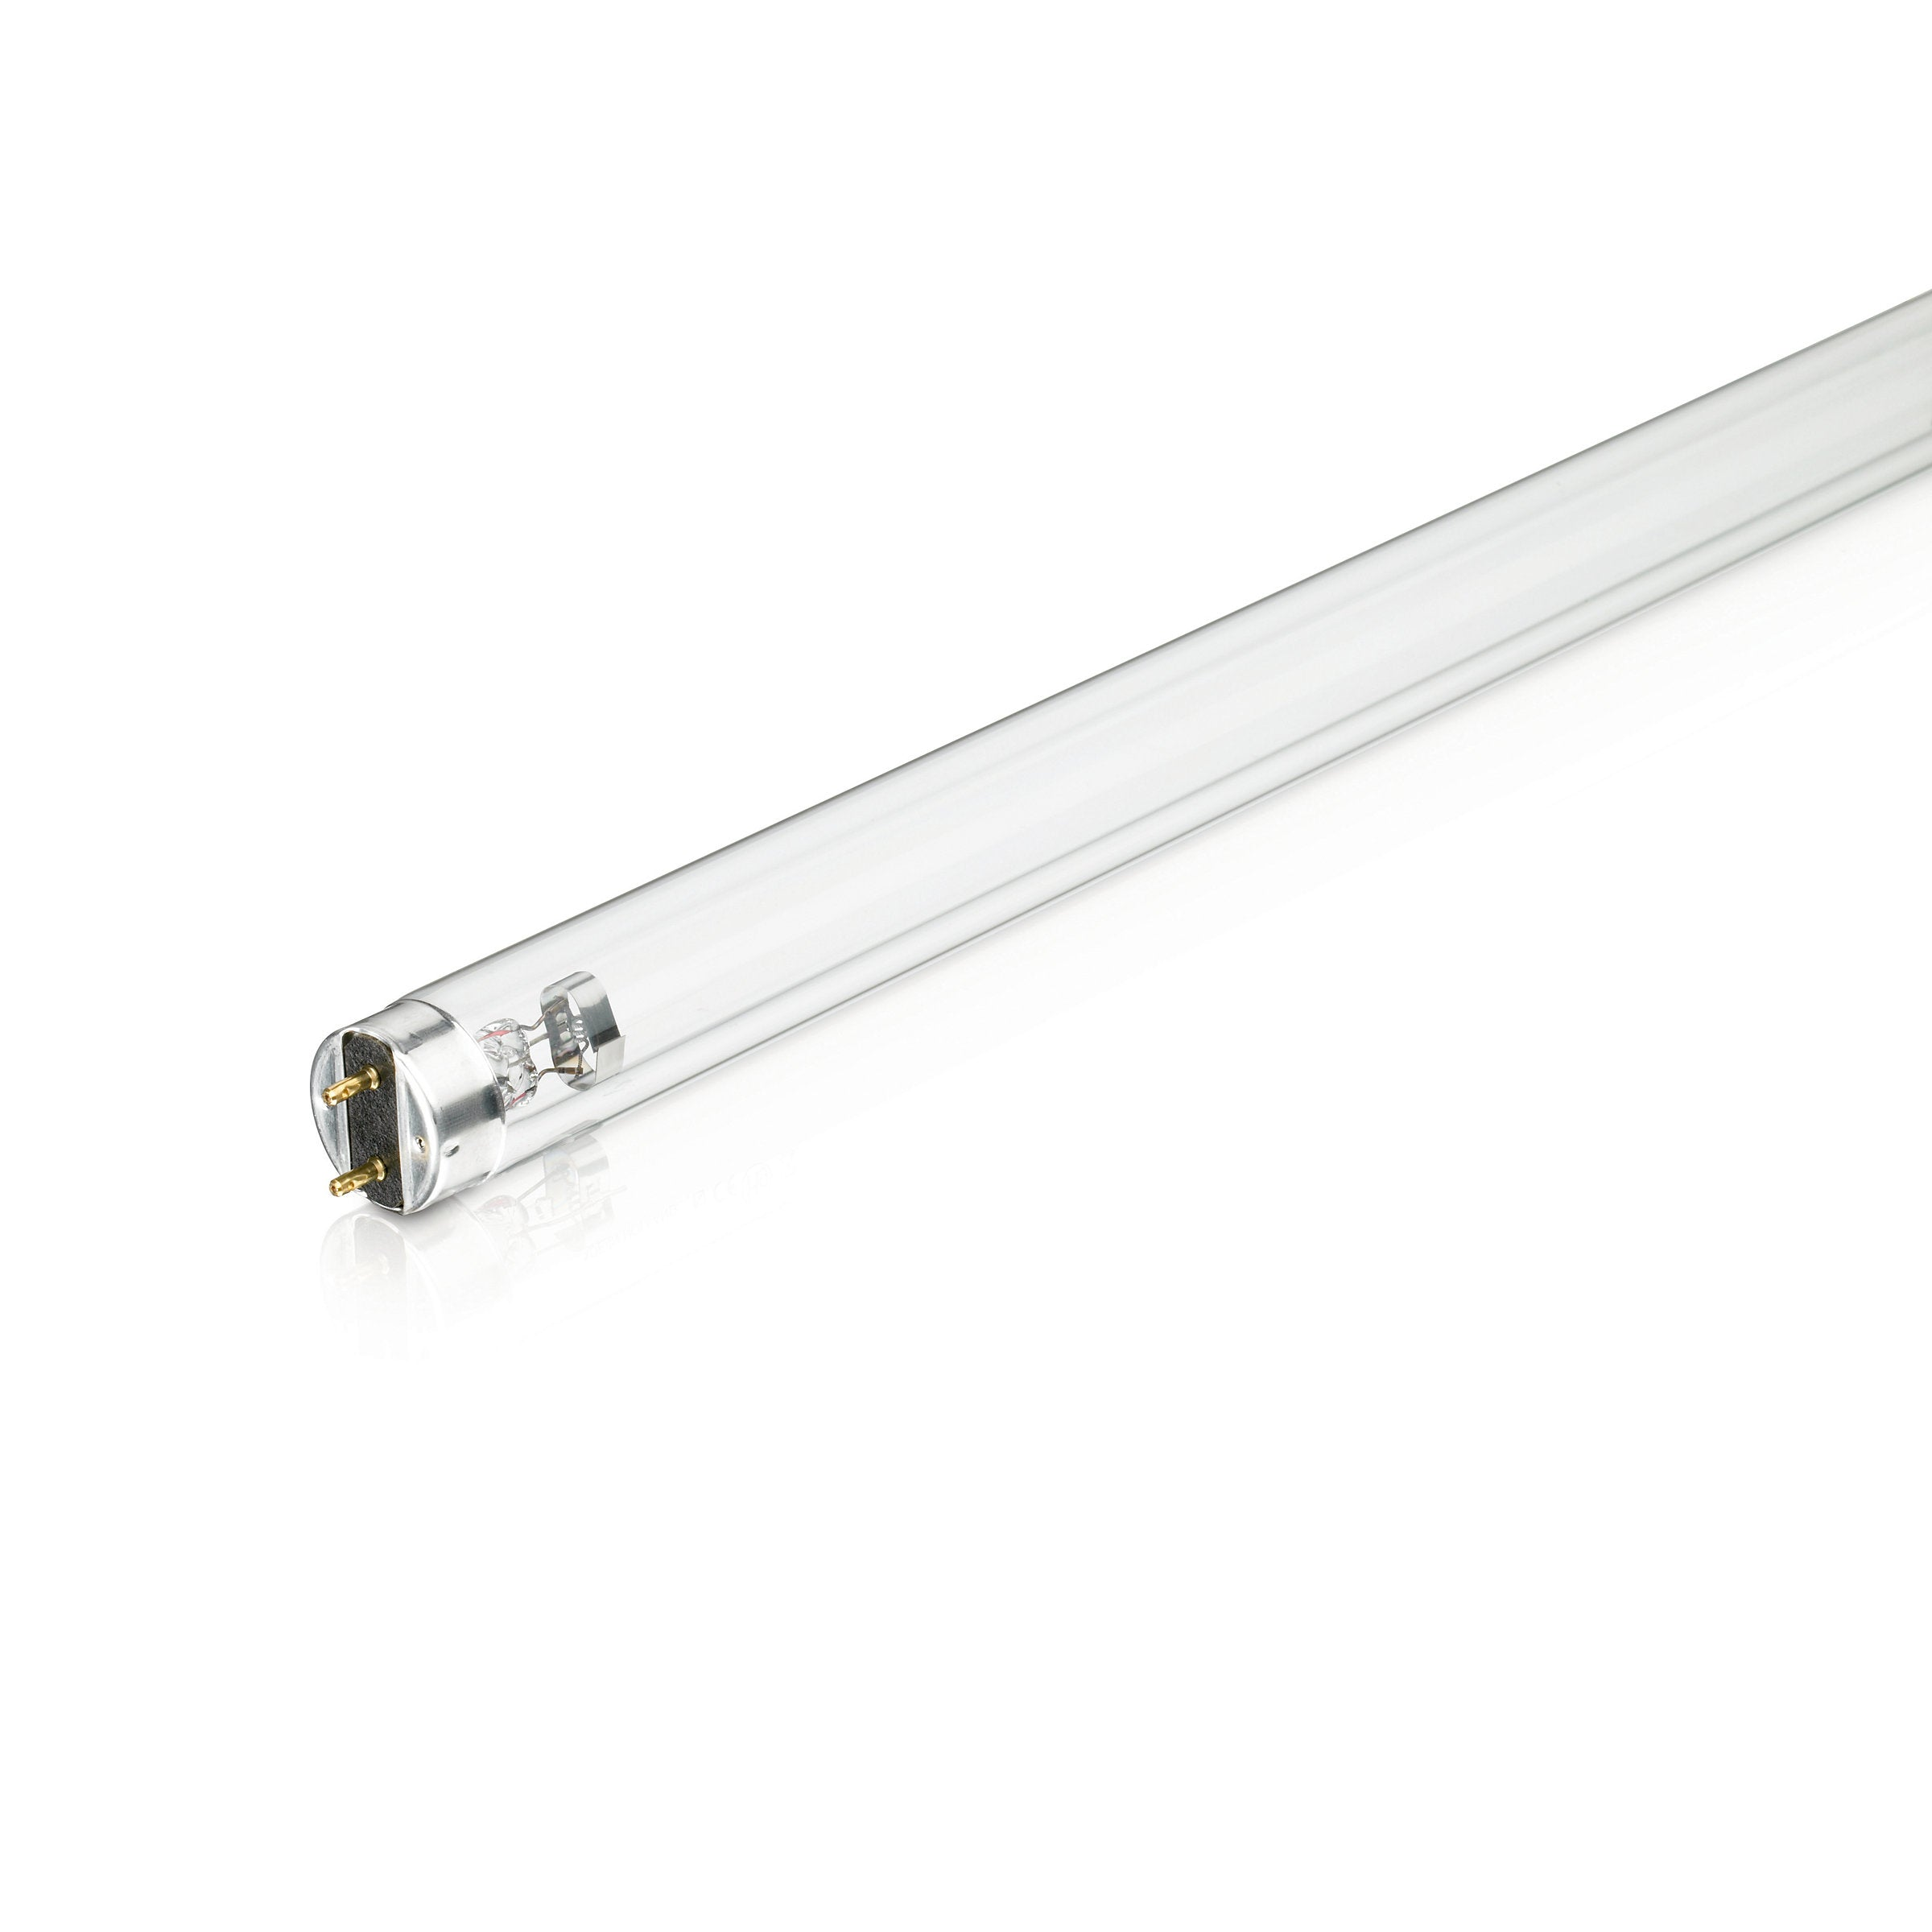 Philips TUV T8 F17 UVC Germicidal Lamp for water and air disinfection